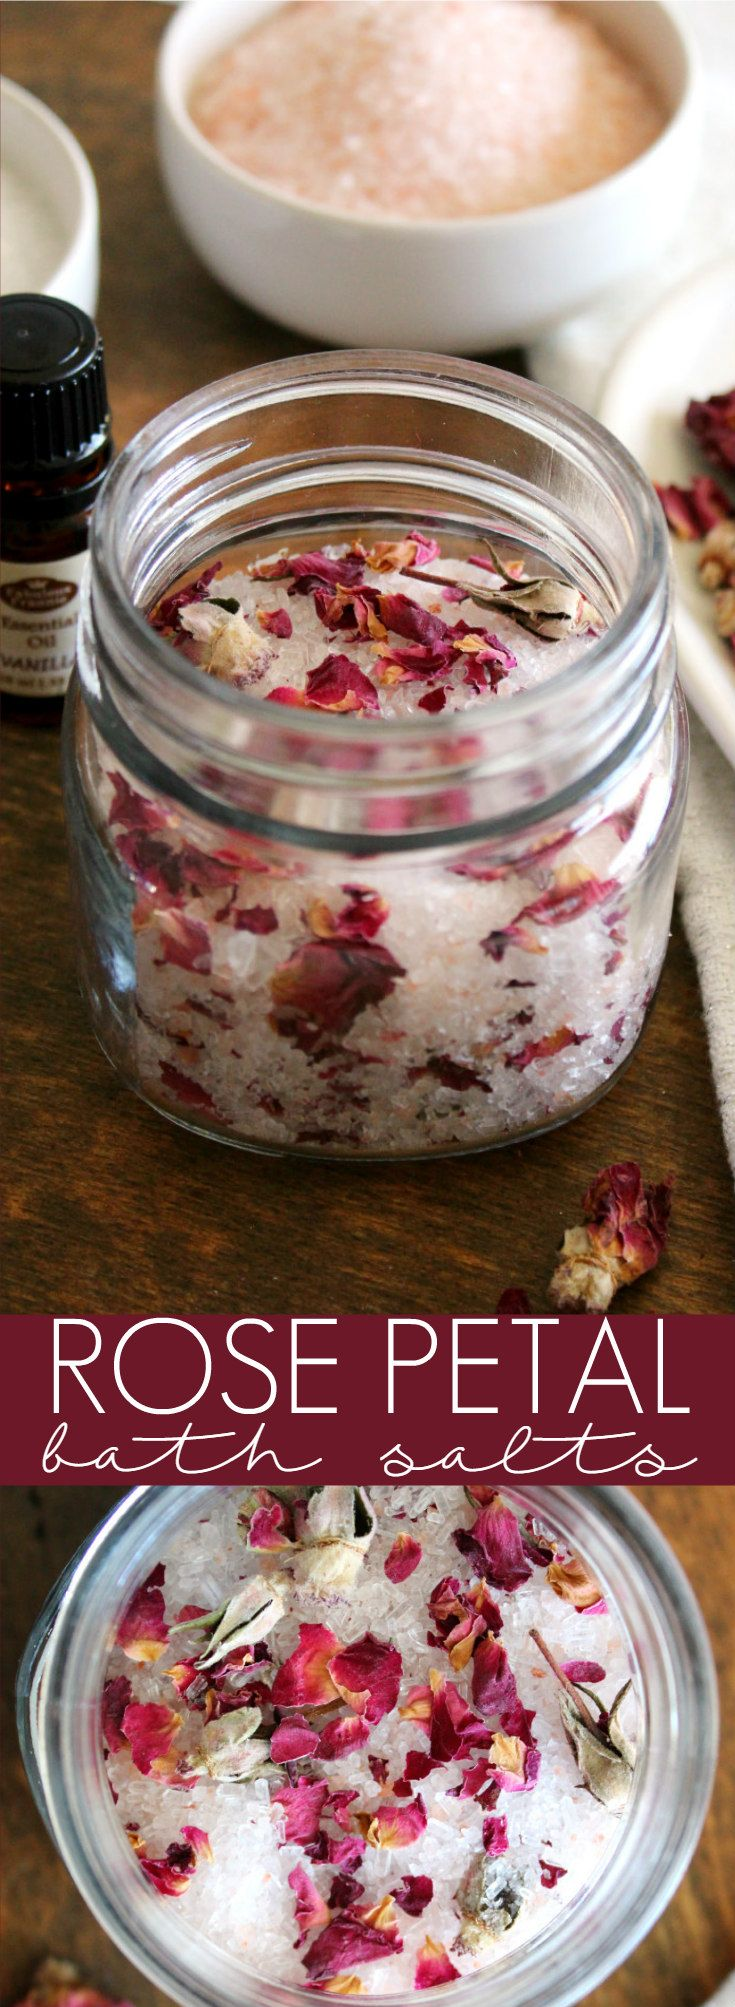 This Valentine's Day, show yourself a little extra love with DIY Rose Petal Bath Salts that are made with Epsom salt, pink Himalayan sea salt, dried rose petals, and scented with soothing vanilla essential oil.